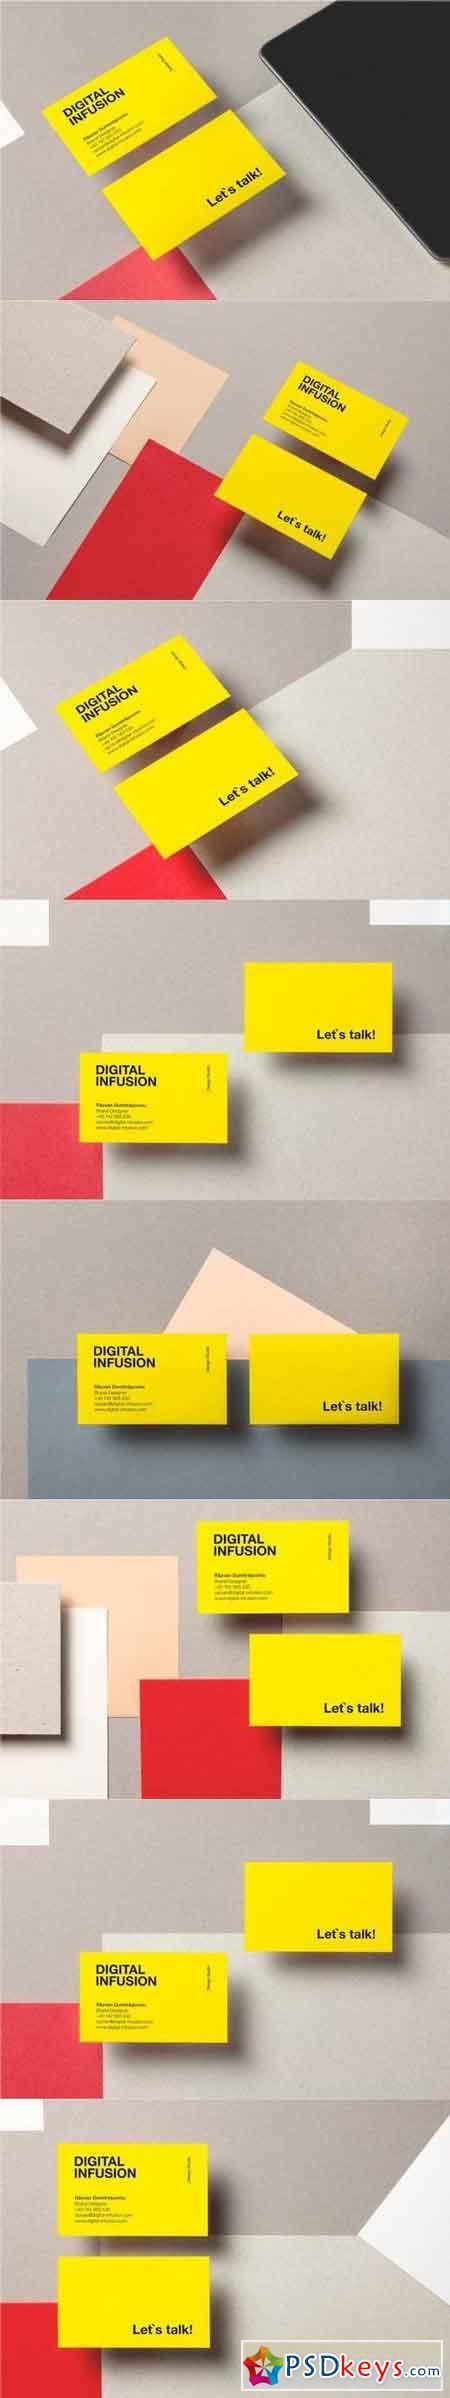 Business Cards Mockup VOL.1